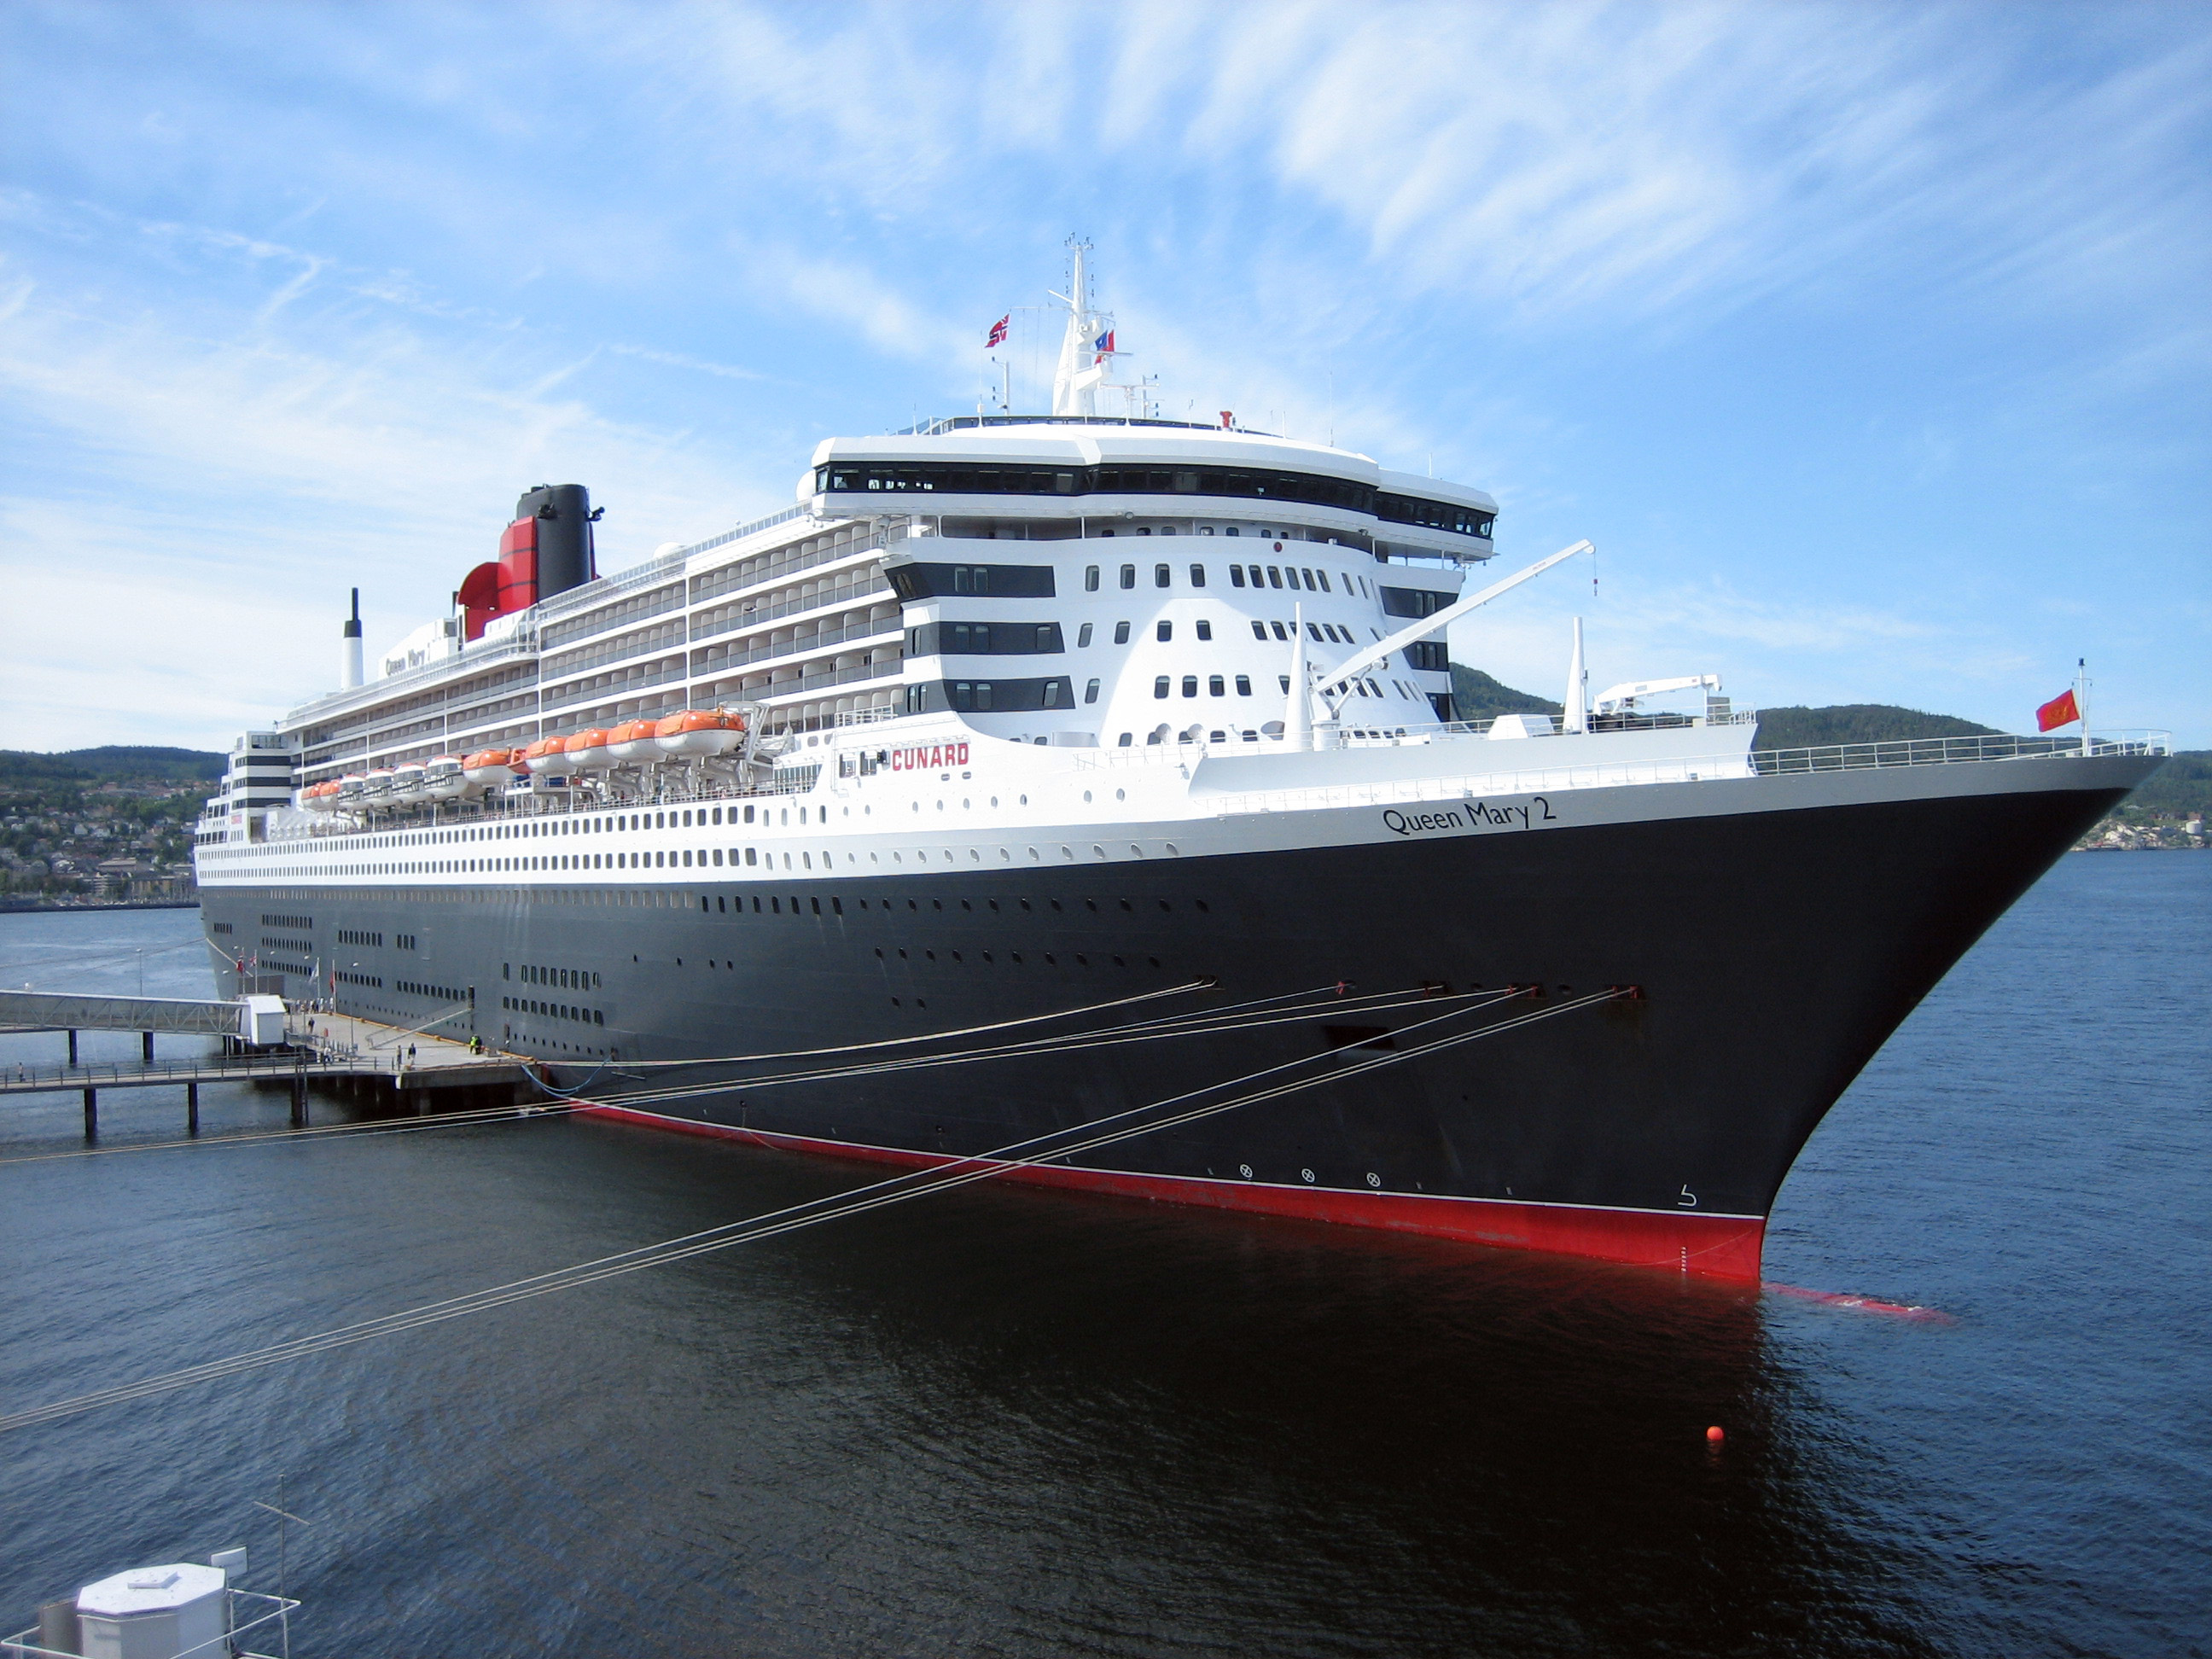 Queen Mary 2 At Trondheim Photo Credit Wikimedia Commons User Beagle84